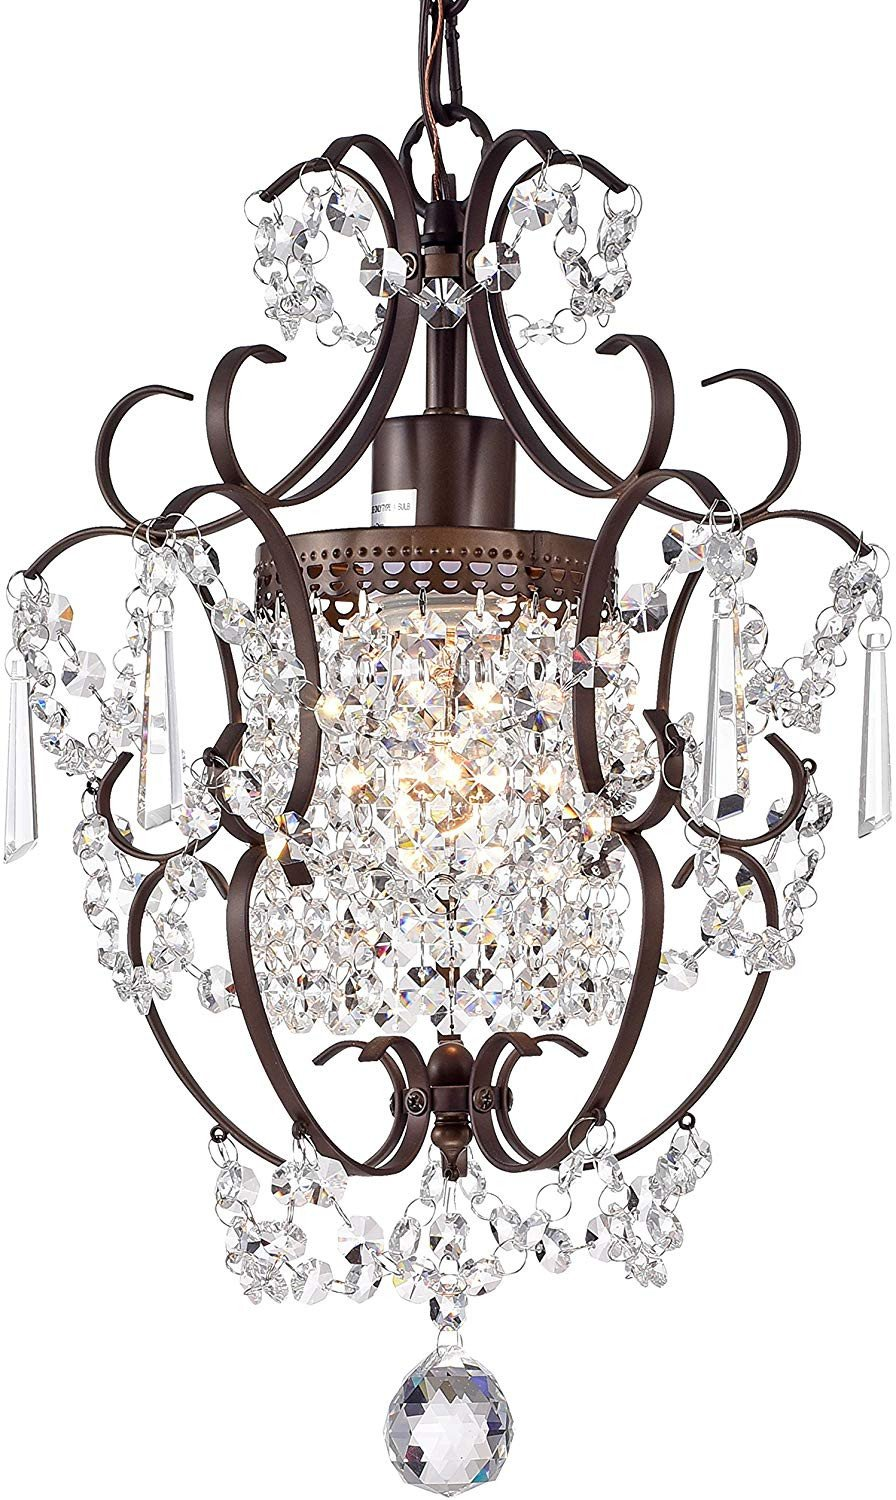 Light Fixtures for Girl Bedroom Unique Crystal Chandelier Lighting Bronze Chandeliers 1 Light Iron Ceiling Light Fixture